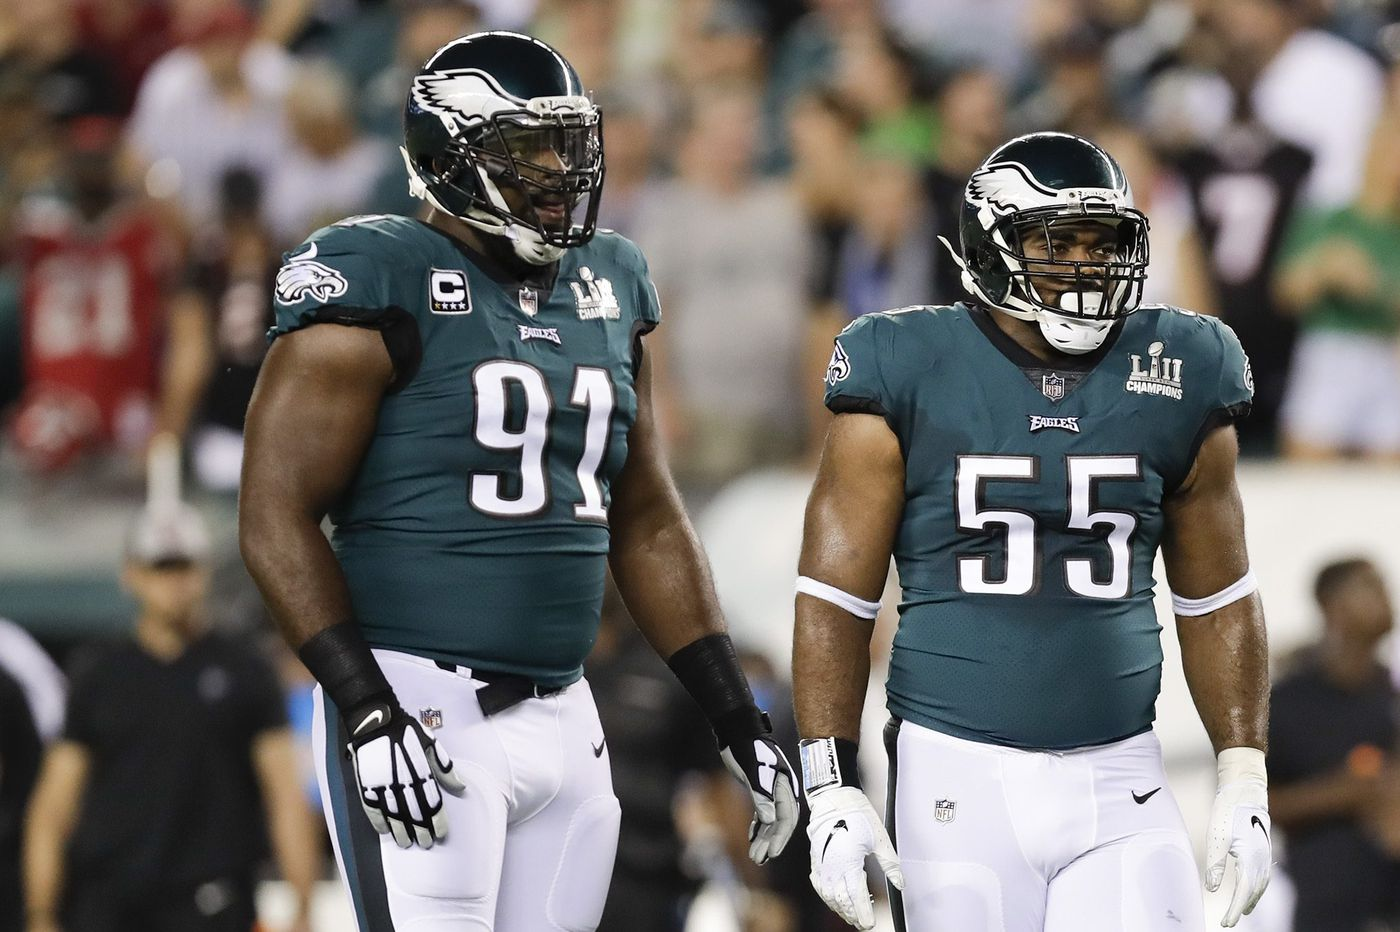 Why Fletcher Cox played more than usual in Week 1 | Early Birds